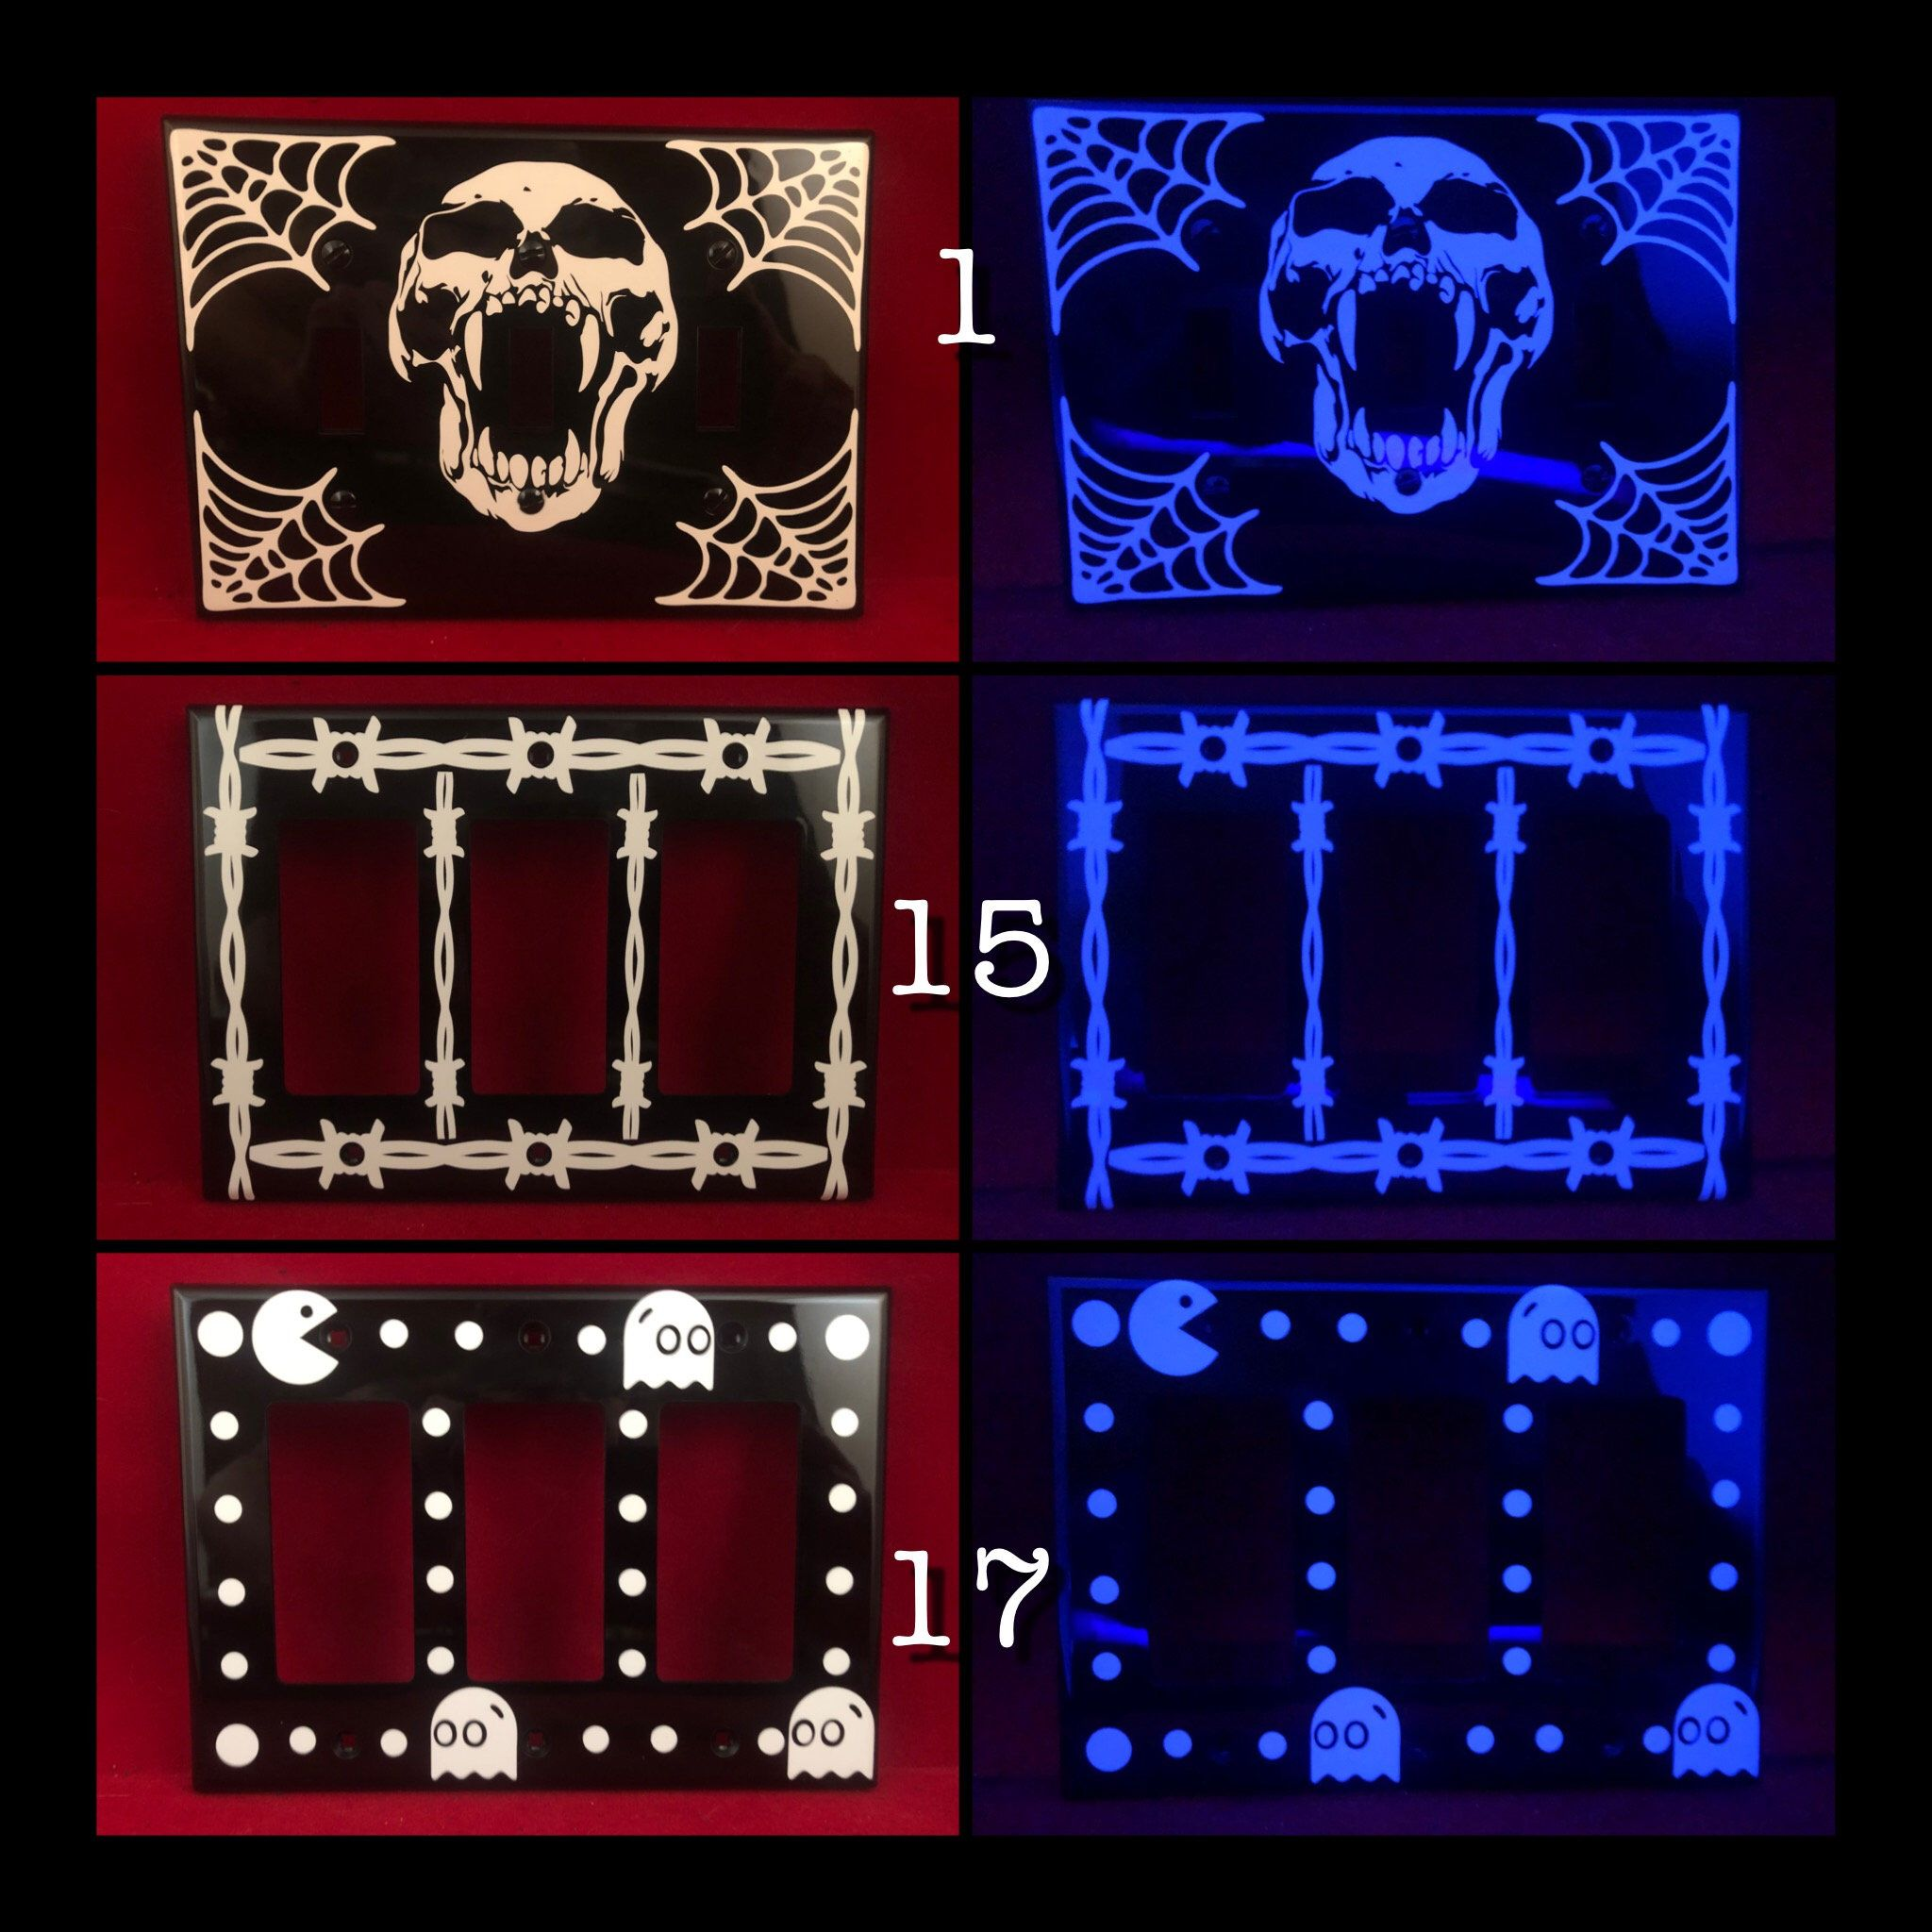 Custom Glow In The Dark Triple Wide Light Switch And Outlet Cover Plates In 2020 Glow In The Dark Light Switch Outlet Covers